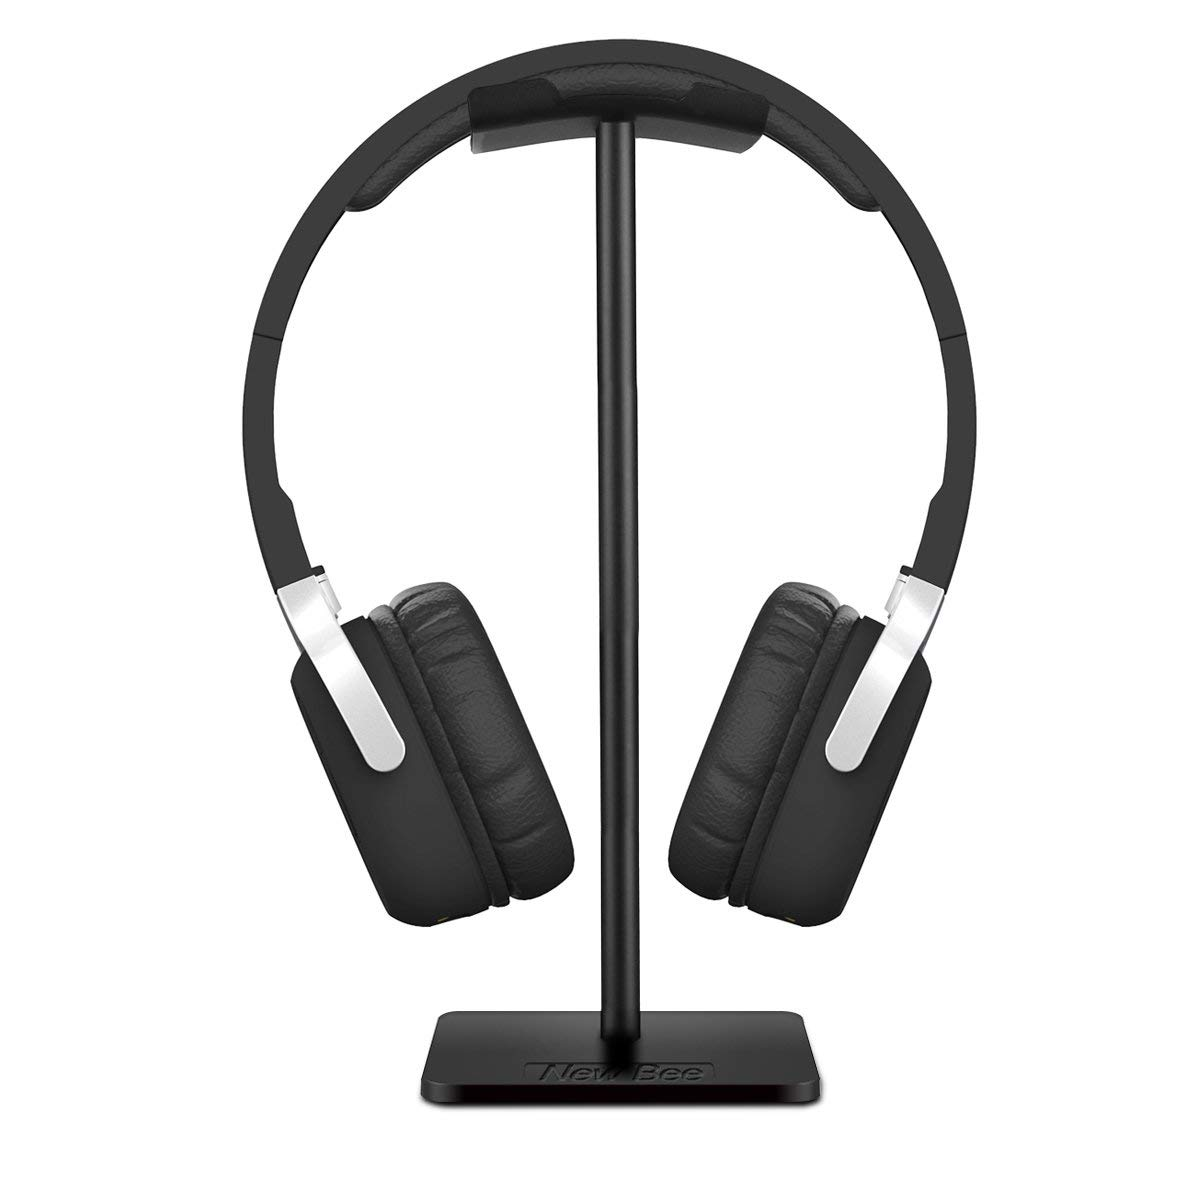 Headphone Stand Headset Holder New Bee Earphone Stand with Aluminum Supporting Bar Flexible Headrest ABS Solid Base for All Headphones Size (Black) $6.47